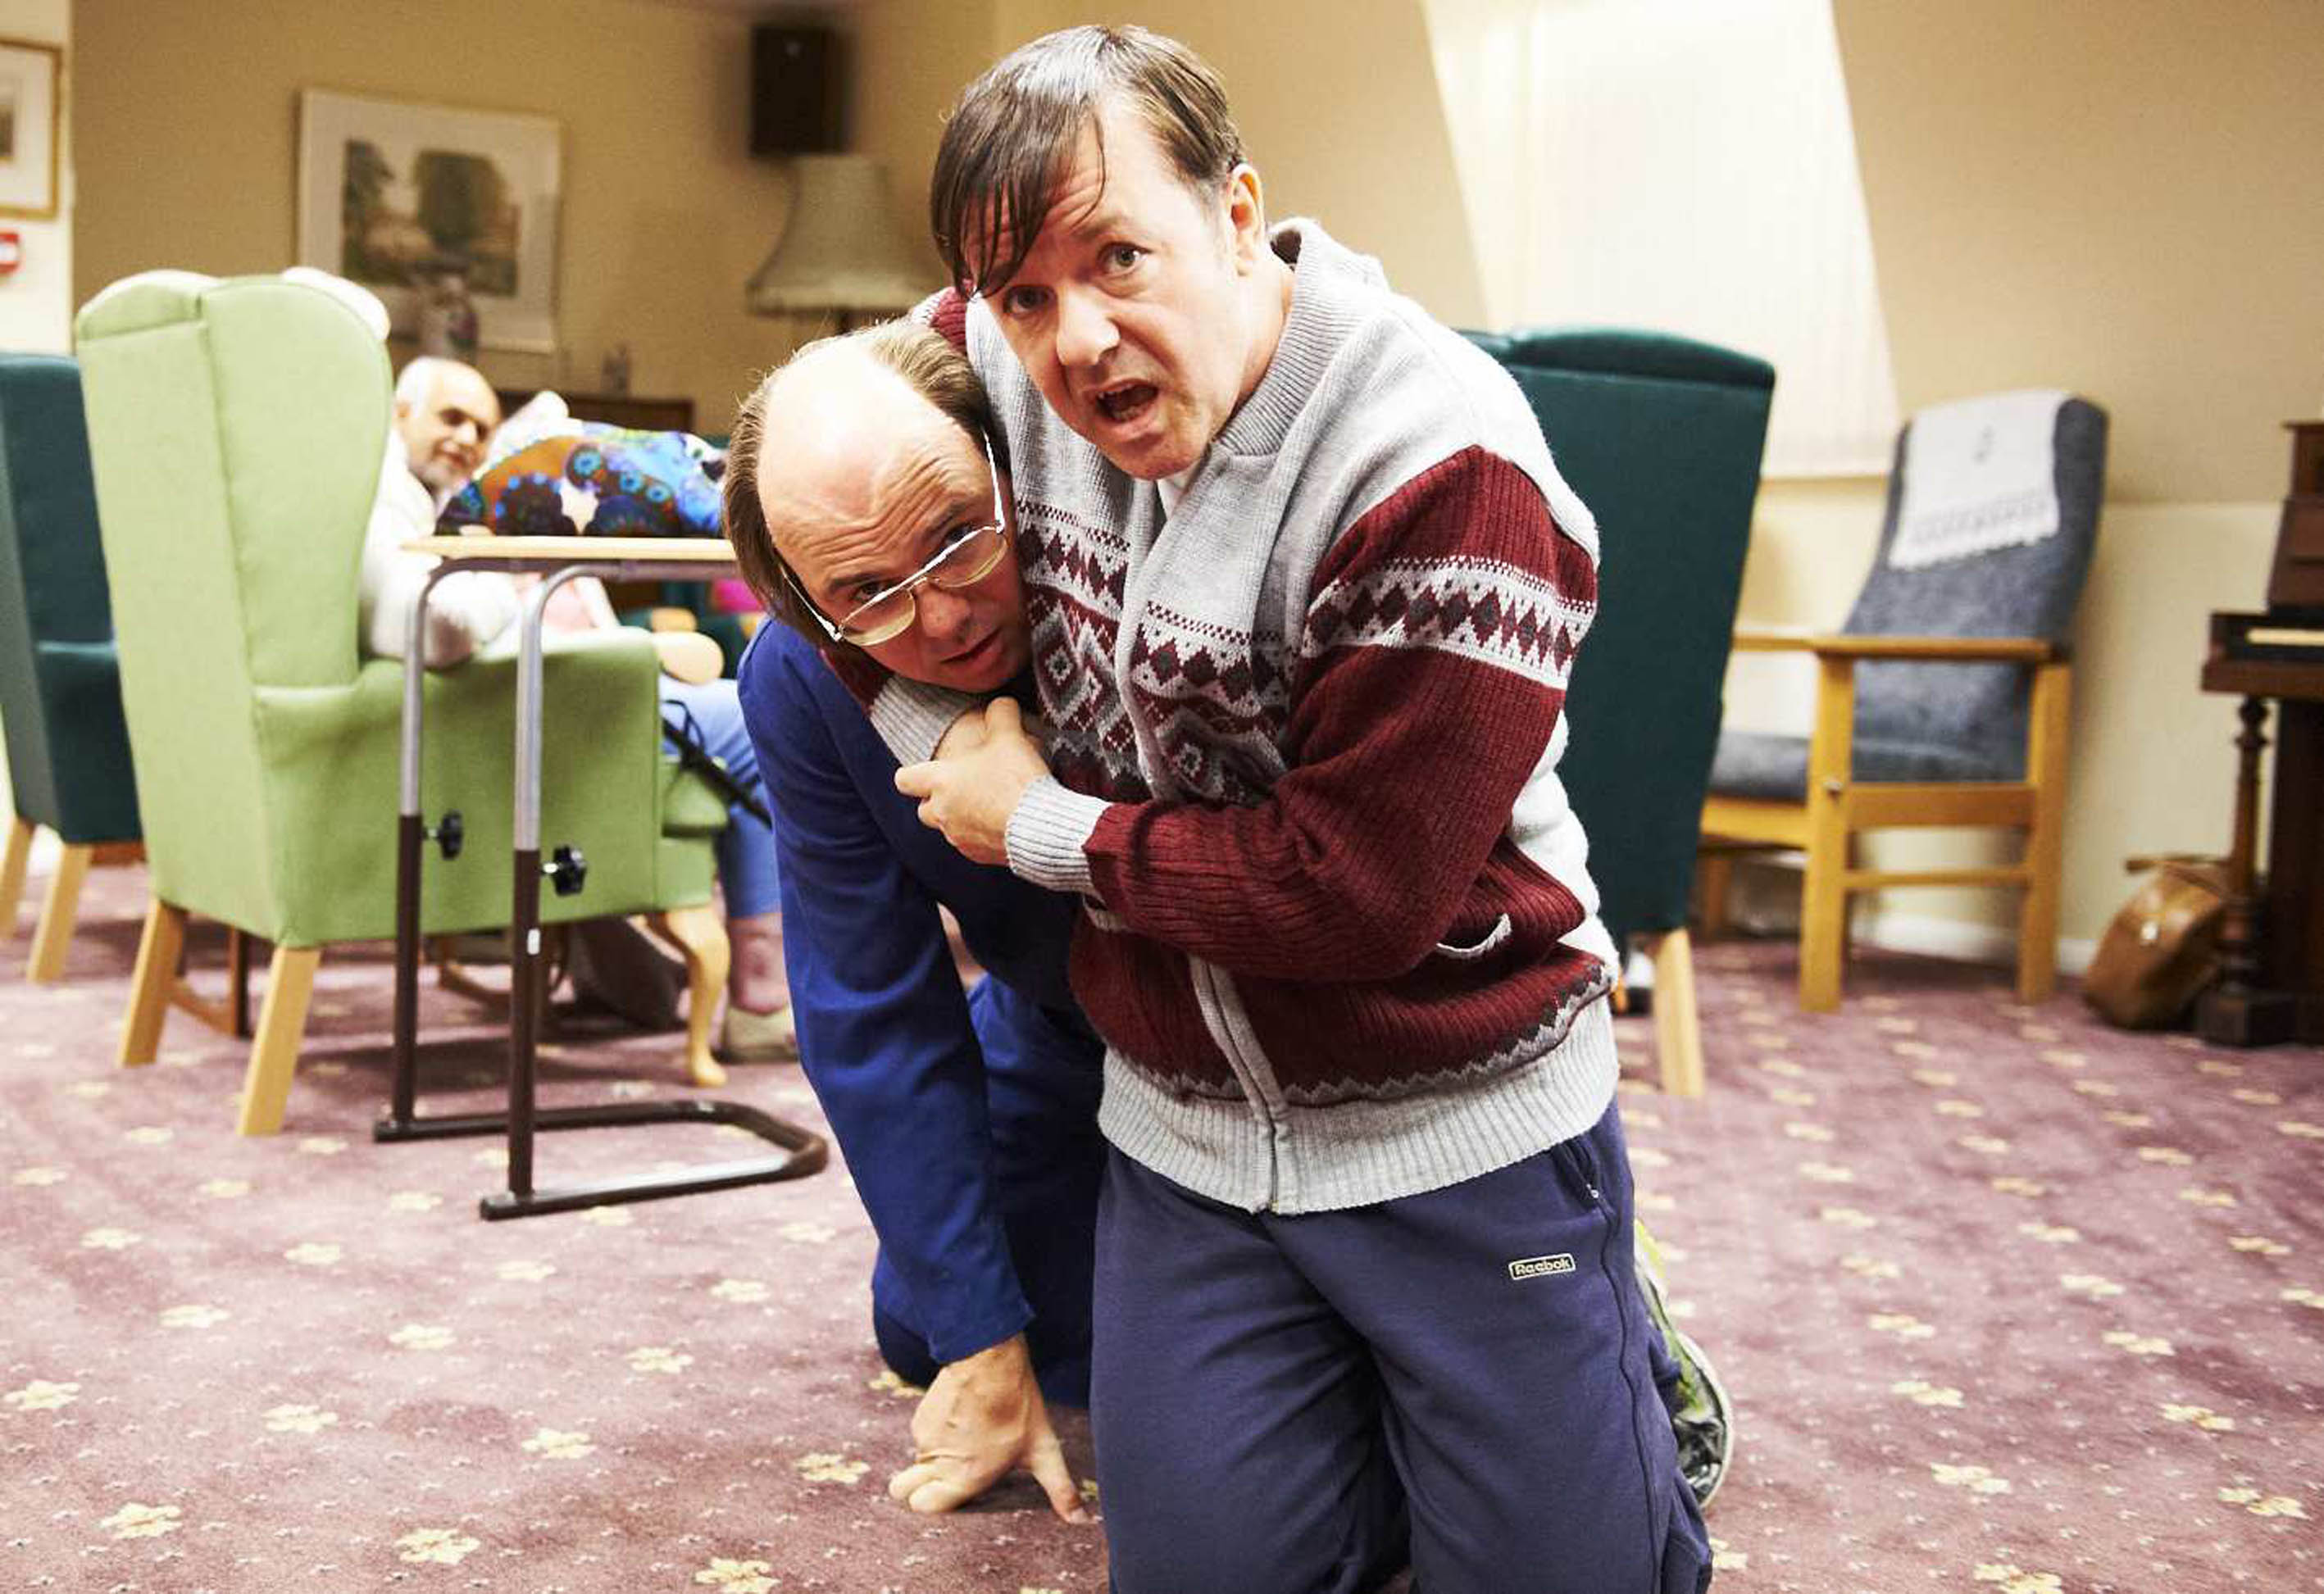 Ricky Gervais: If Derek was real, I would love him as a person